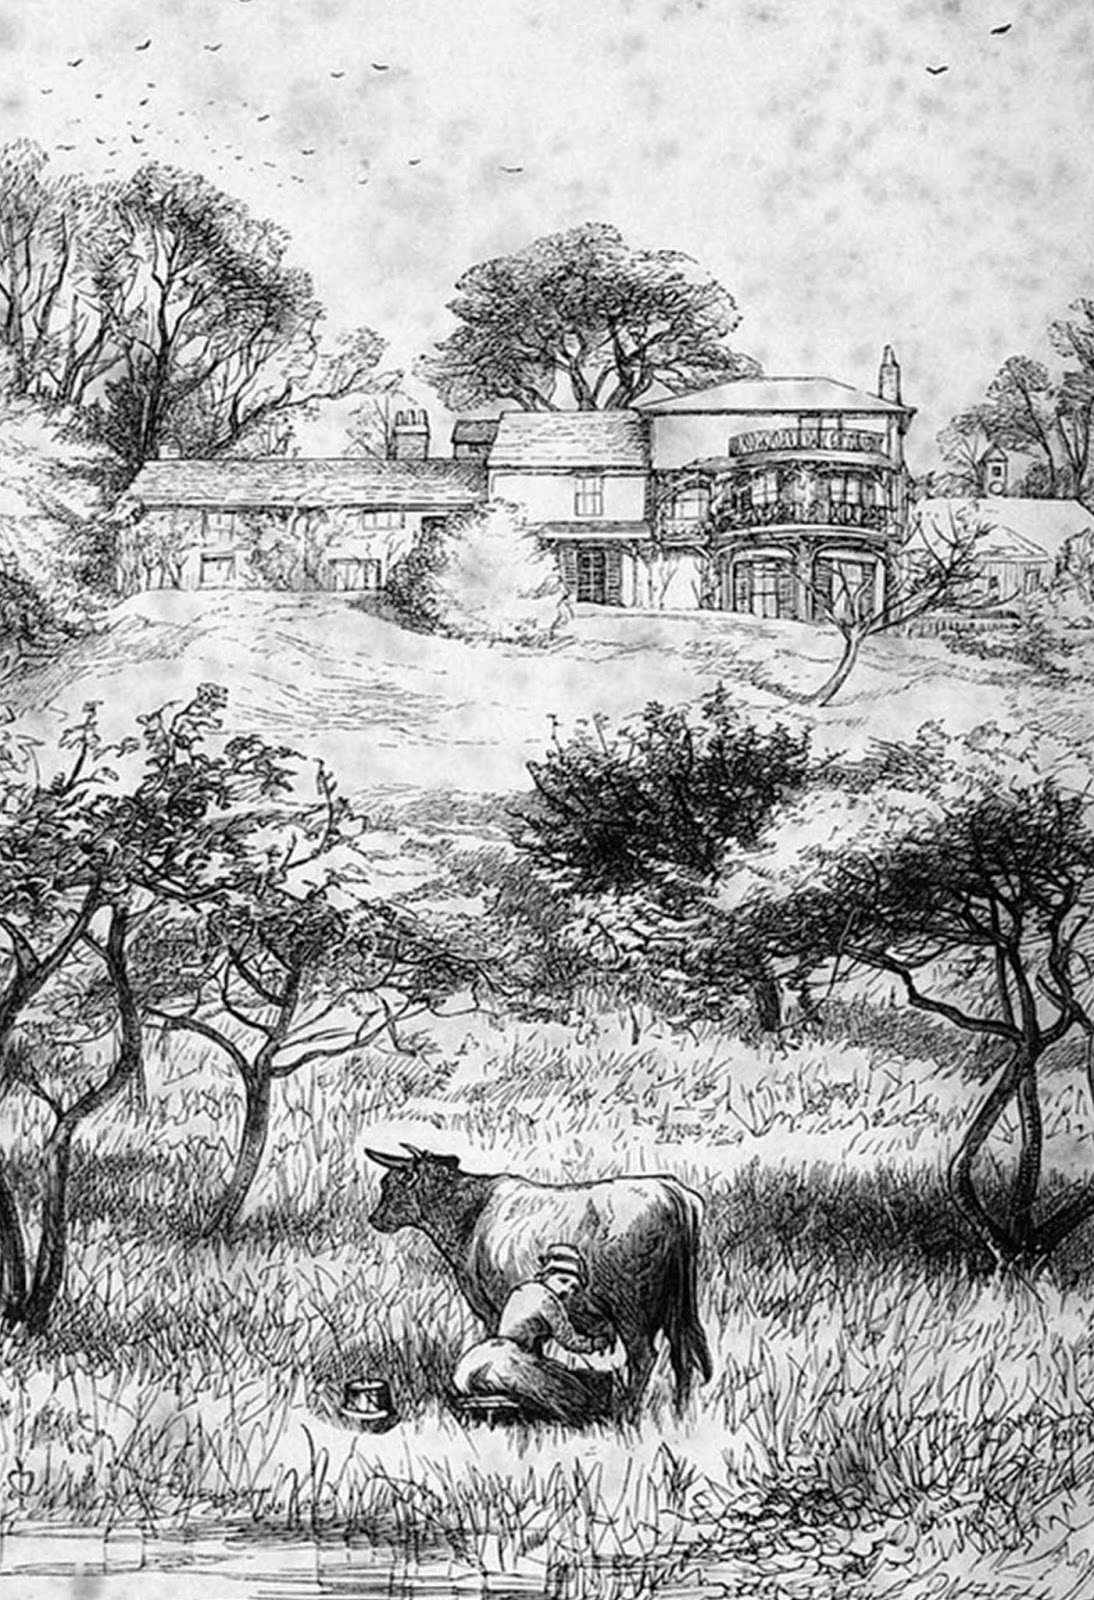 At The Age Of One, The Infant Trollope Was Taken To A House Called Julians  Near Harrow, Ostensibly For Farming Reasons But Actually So He Could Attend